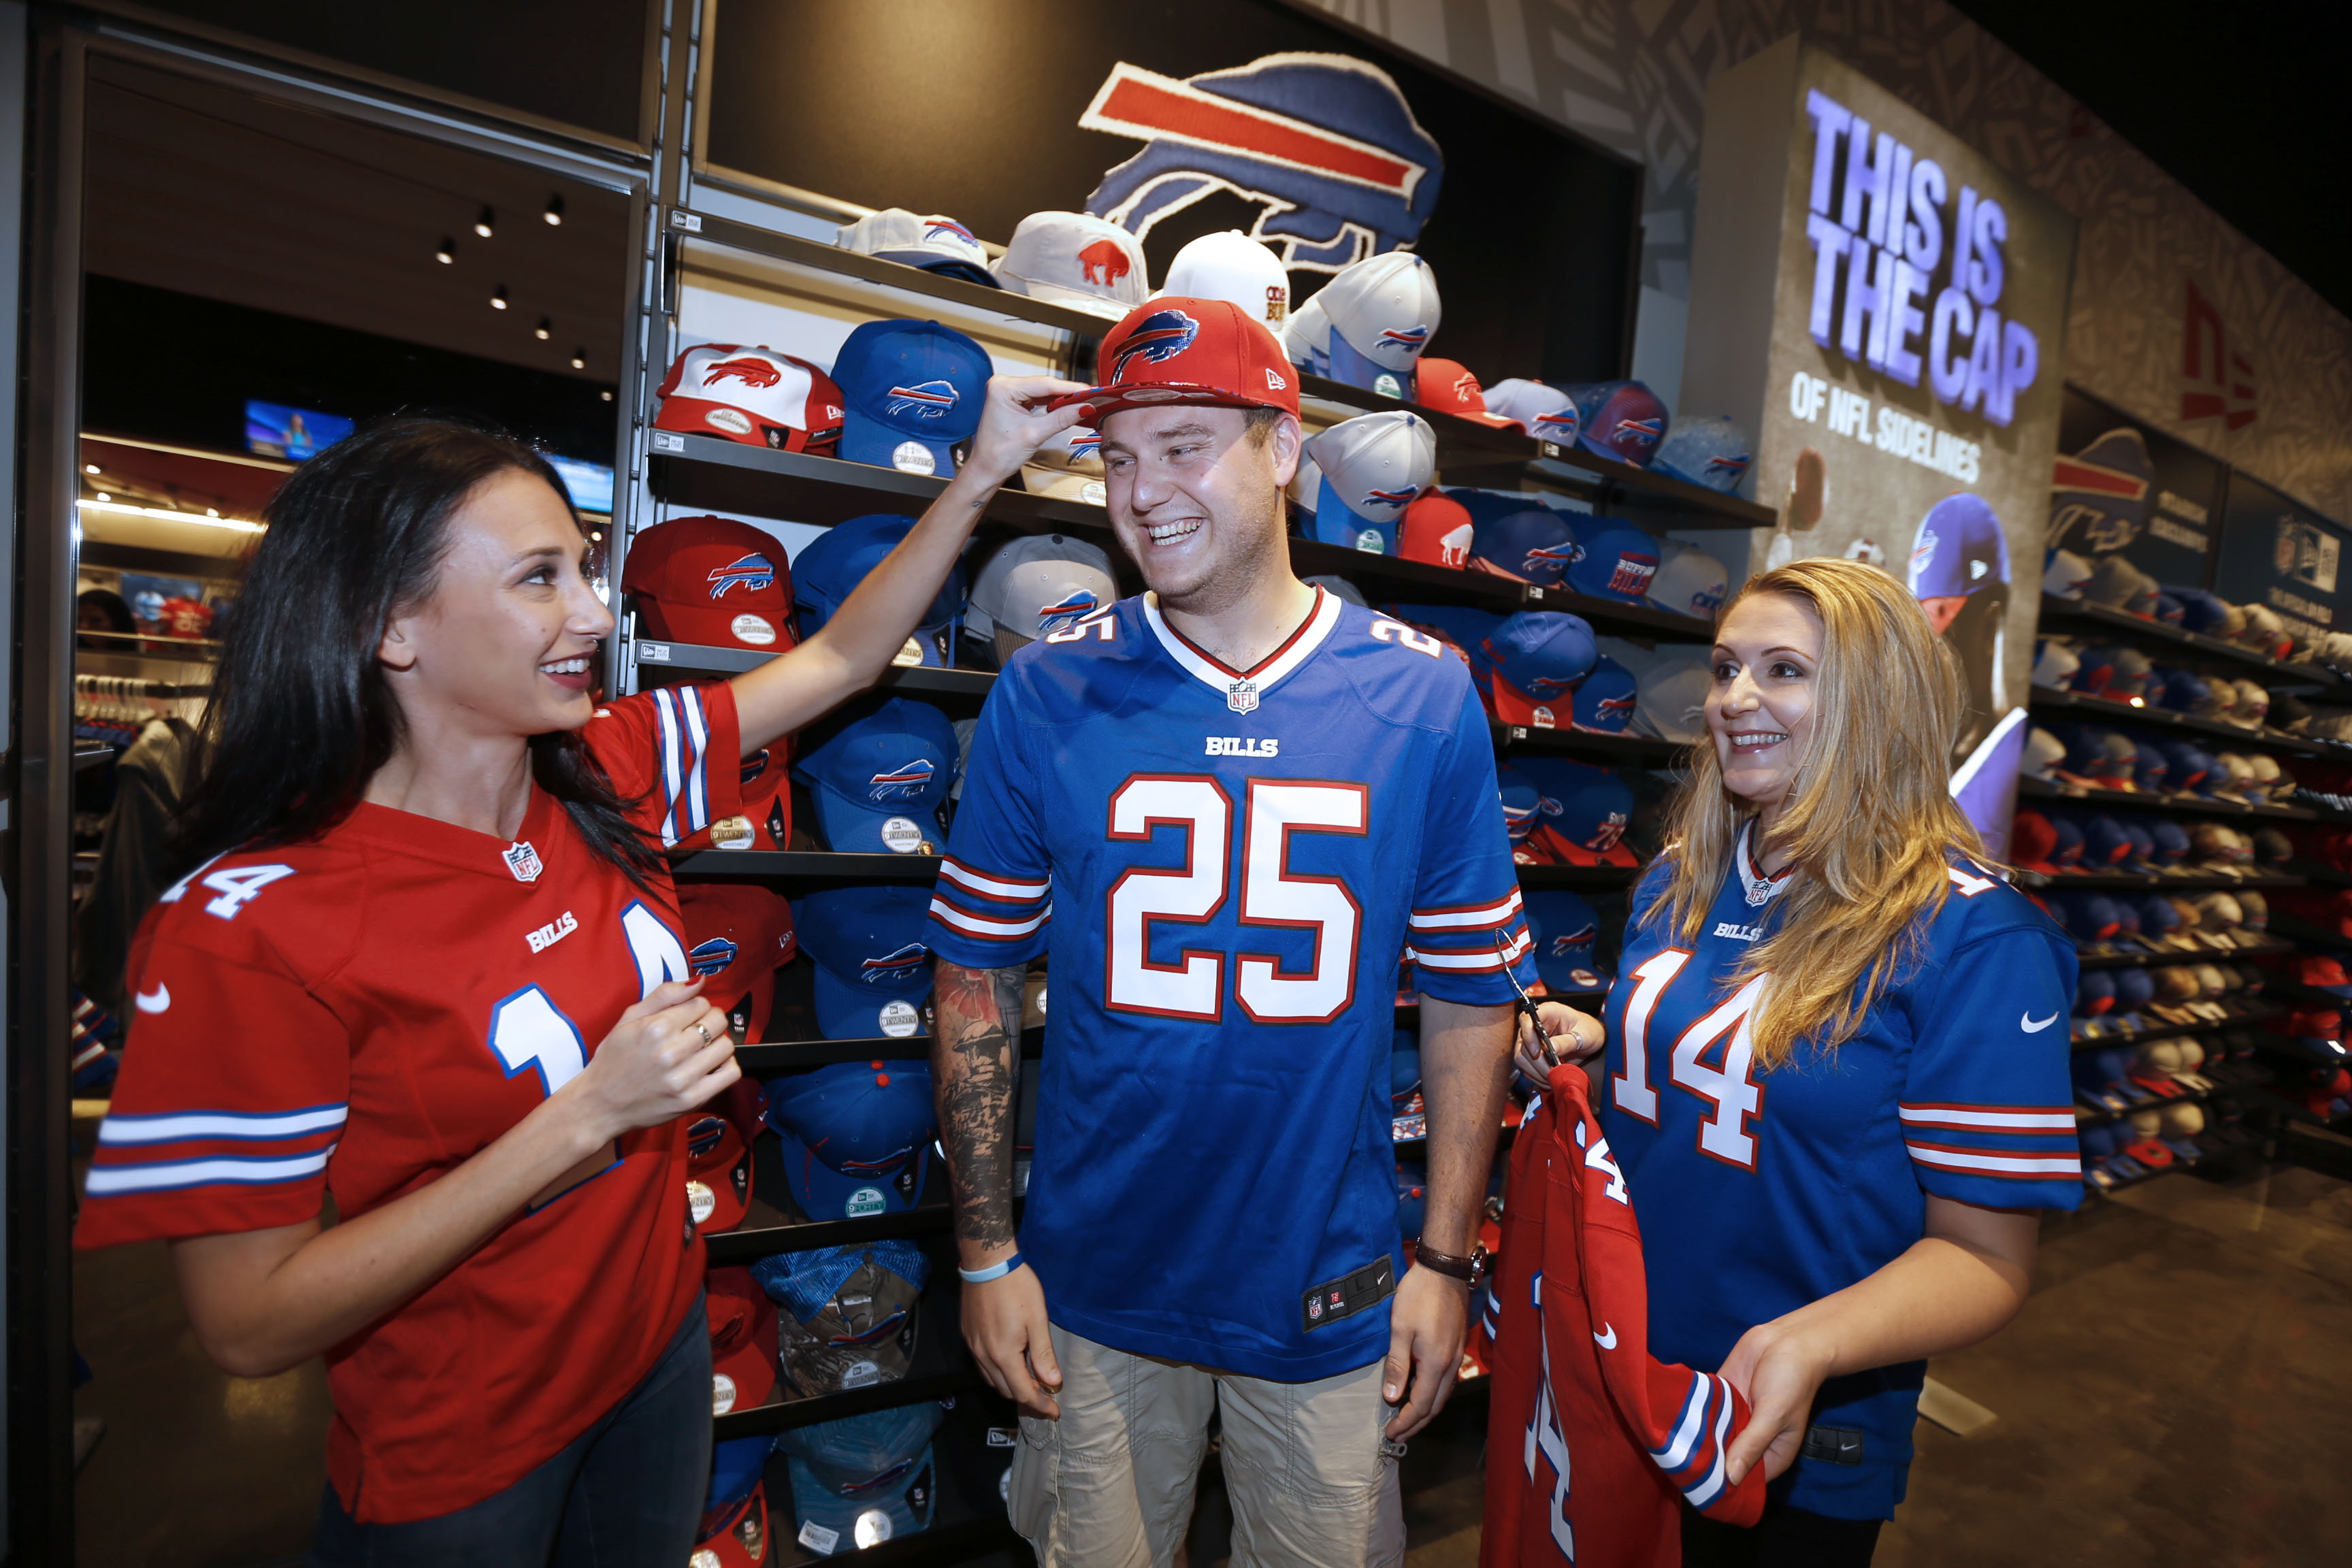 Inside the Bills Store at New Era Field where the Buffalo Bills play are, Matt Wild, center, and his wife Claire Wild, right, from Helston, Cornwall, England and their host Jenna Scavone, left, of Orchard Park on  Tuesday.  (Robert Kirkham/Buffalo News)